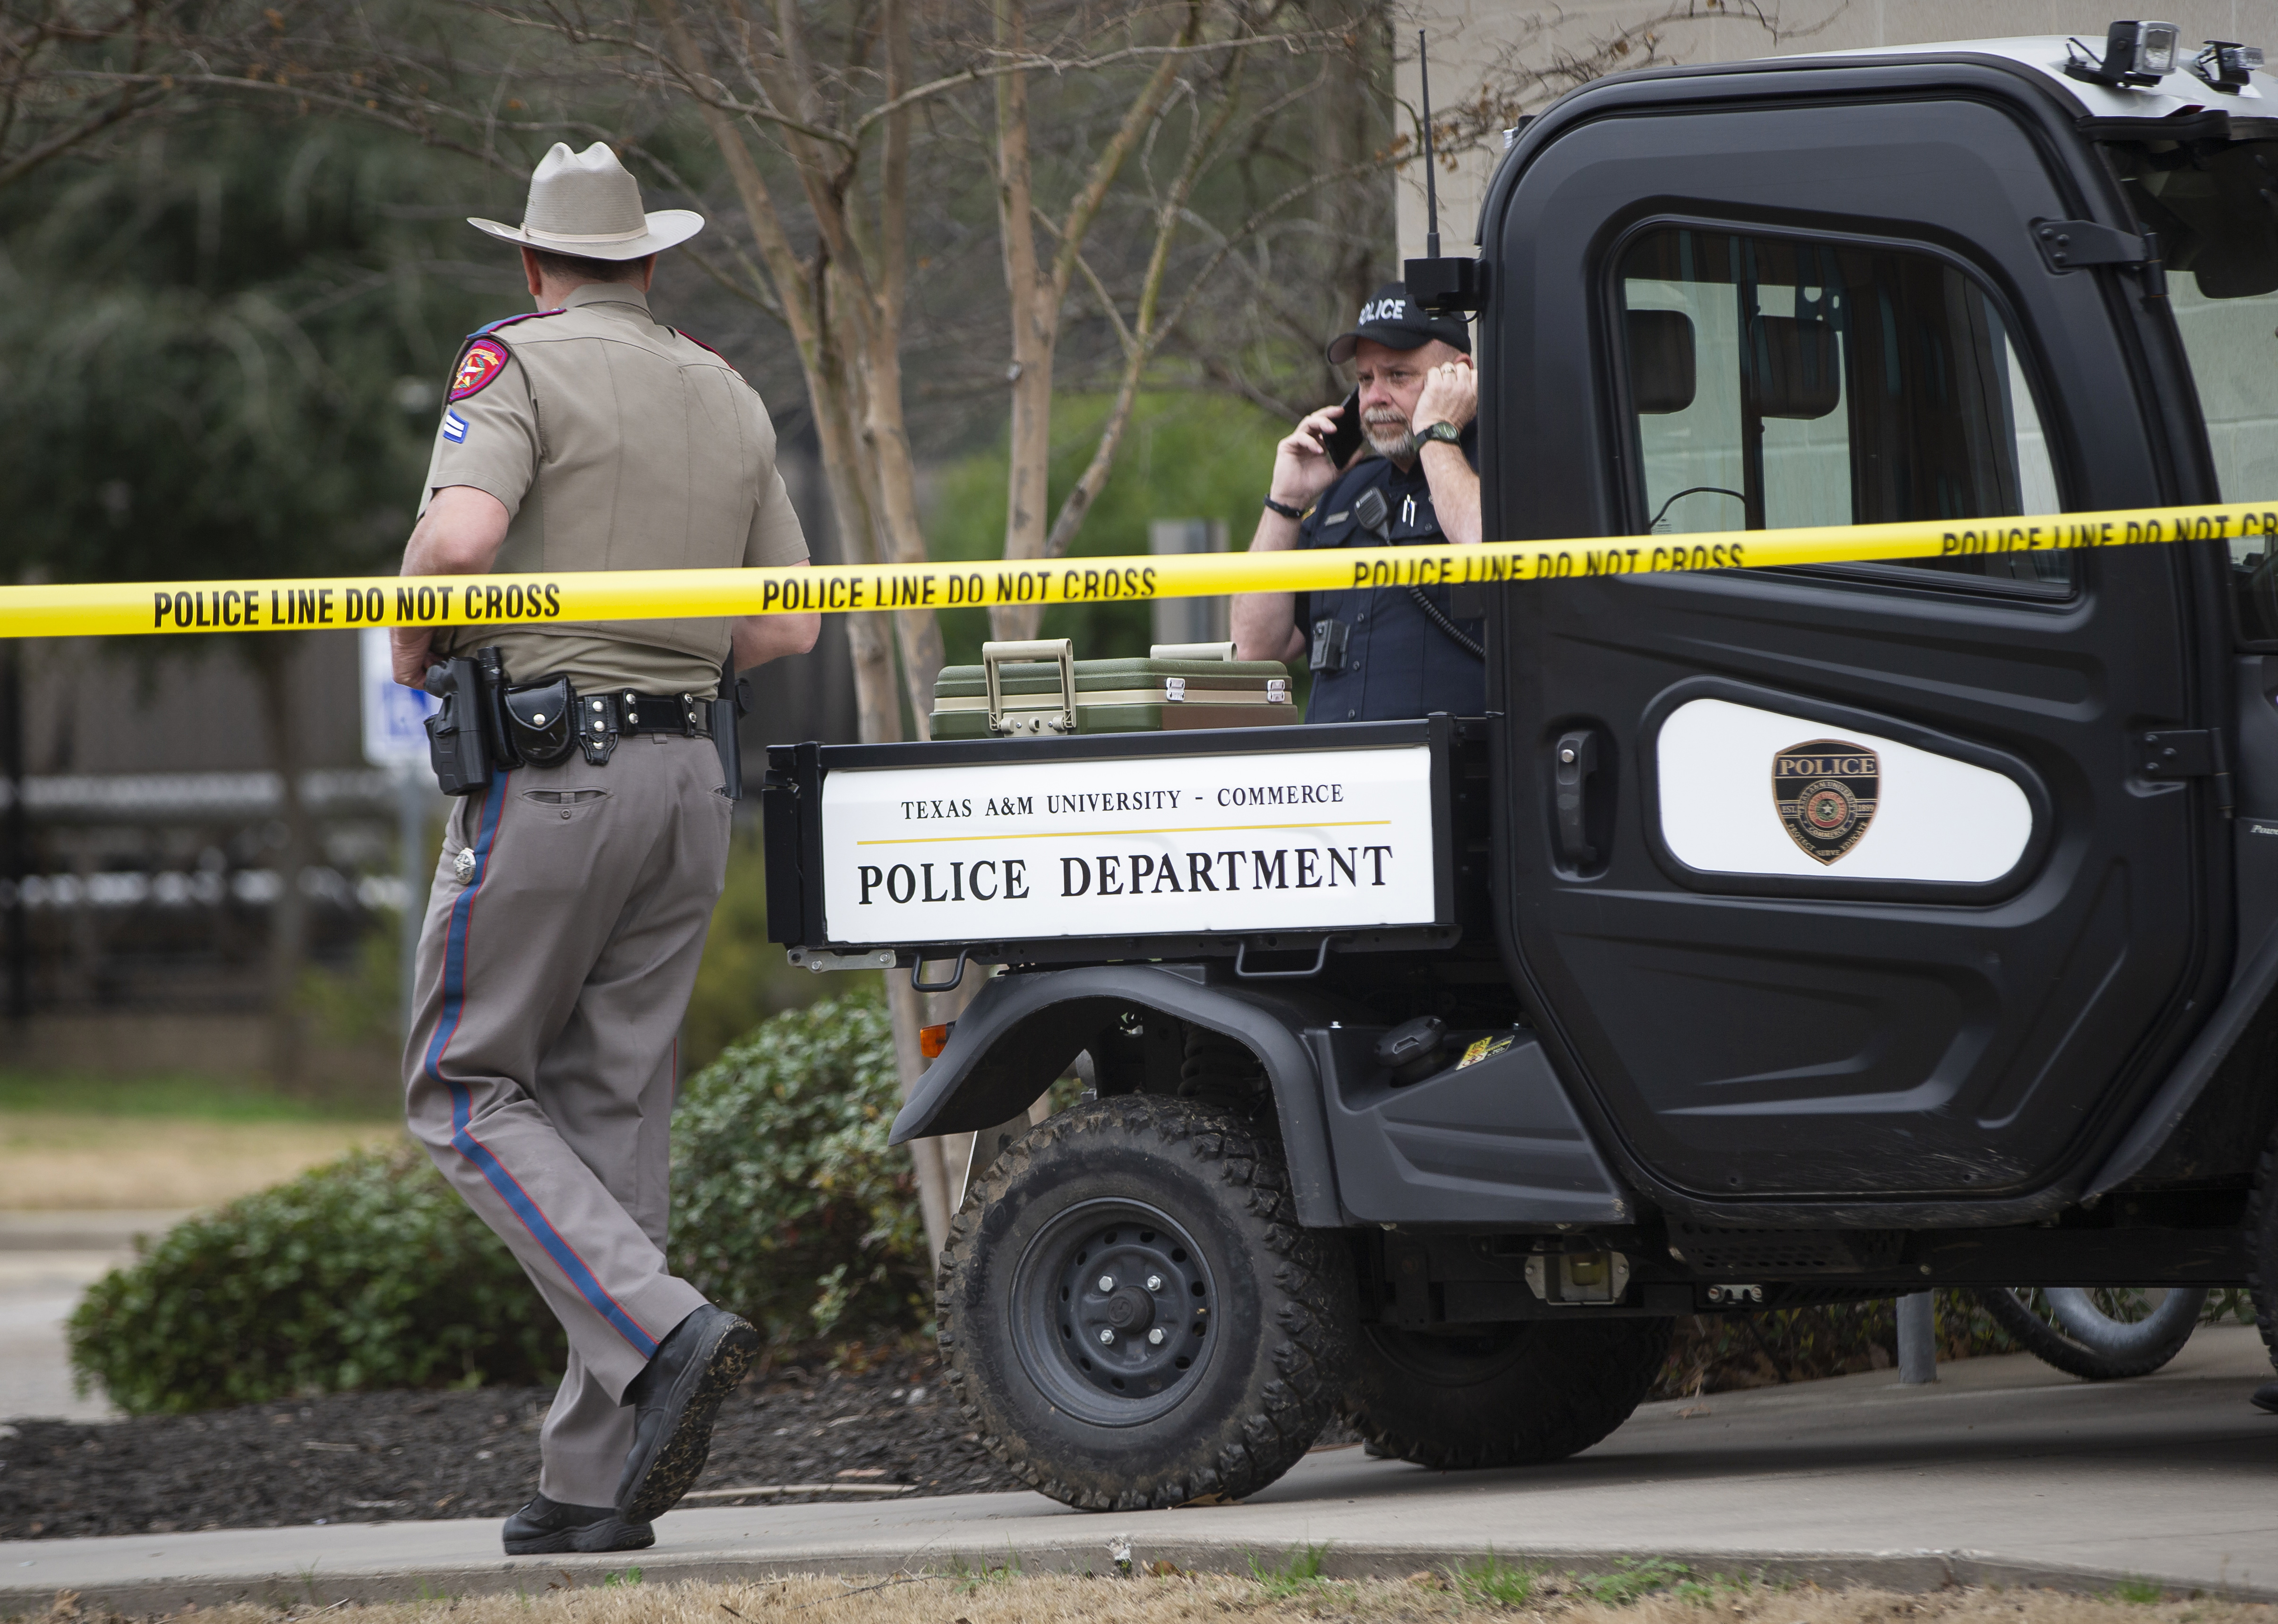 Law enforcement officers work the scene a shooting outside of the Pride Rock residence at Texas A&M University-Commerce in Commerce, Texas, Monday, Feb. 3, 2020.